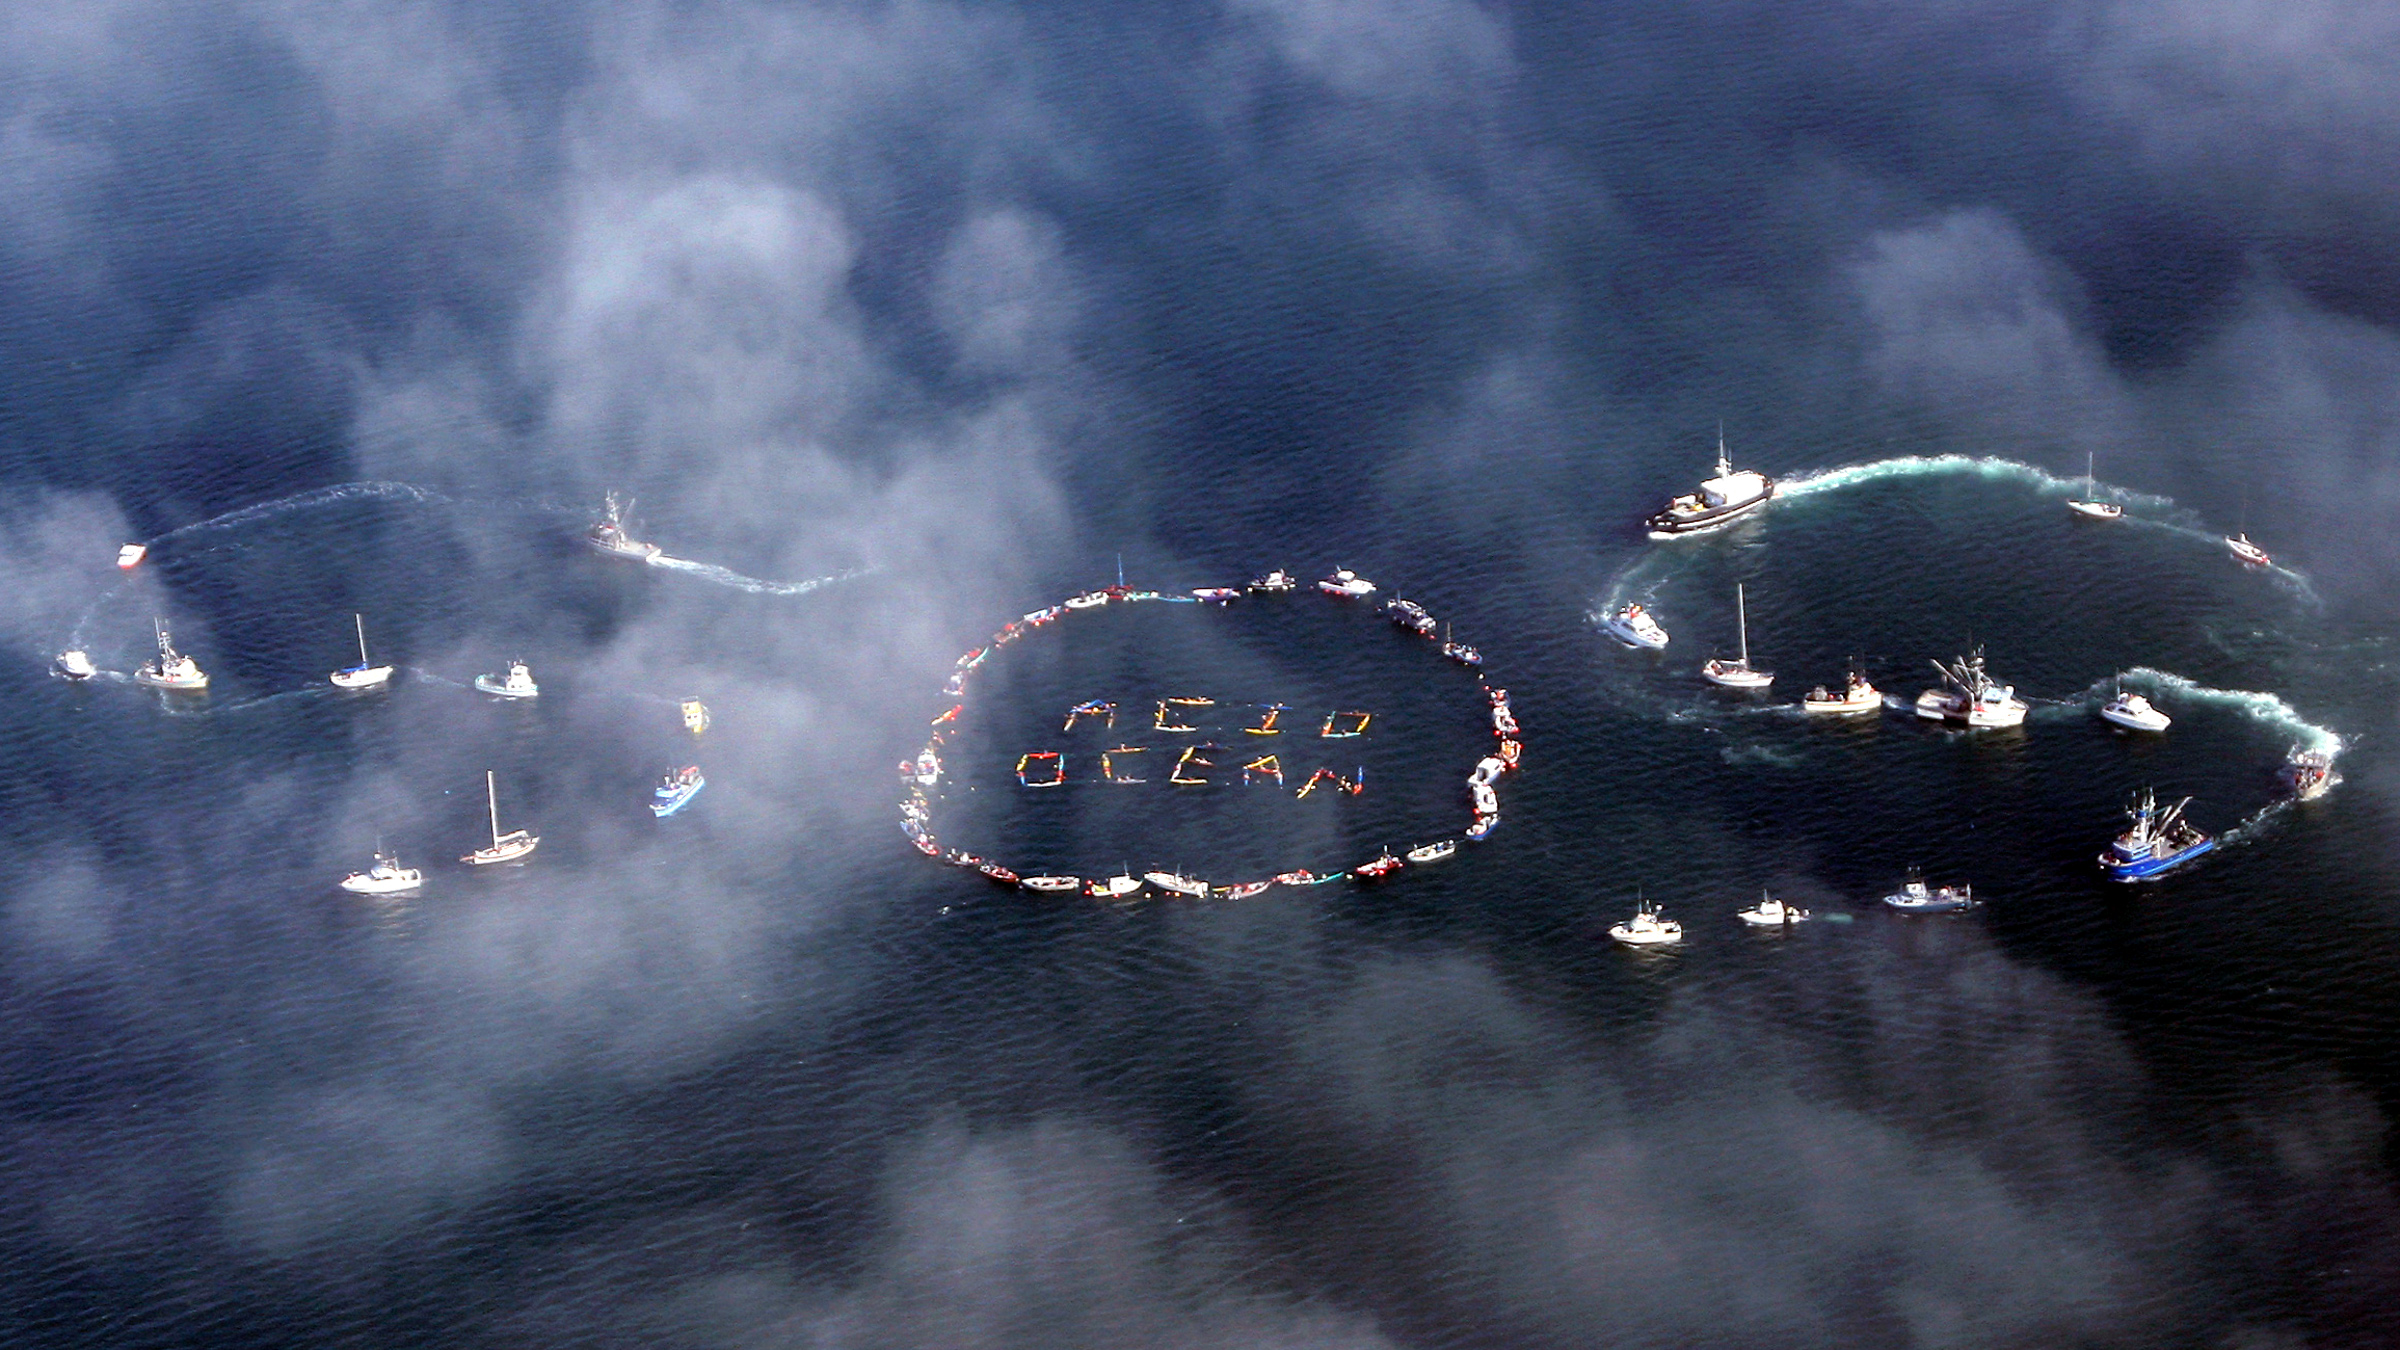 """Commercial fishermen and other mariners form the word """"SOS"""" during an event held to spread the message of saving the oceans from acidification caused by fossil fuel emissions, in Homer, Alaska, September 6, 2009. Over a hundred boats and hundreds of members of the fishing community participated in the event."""